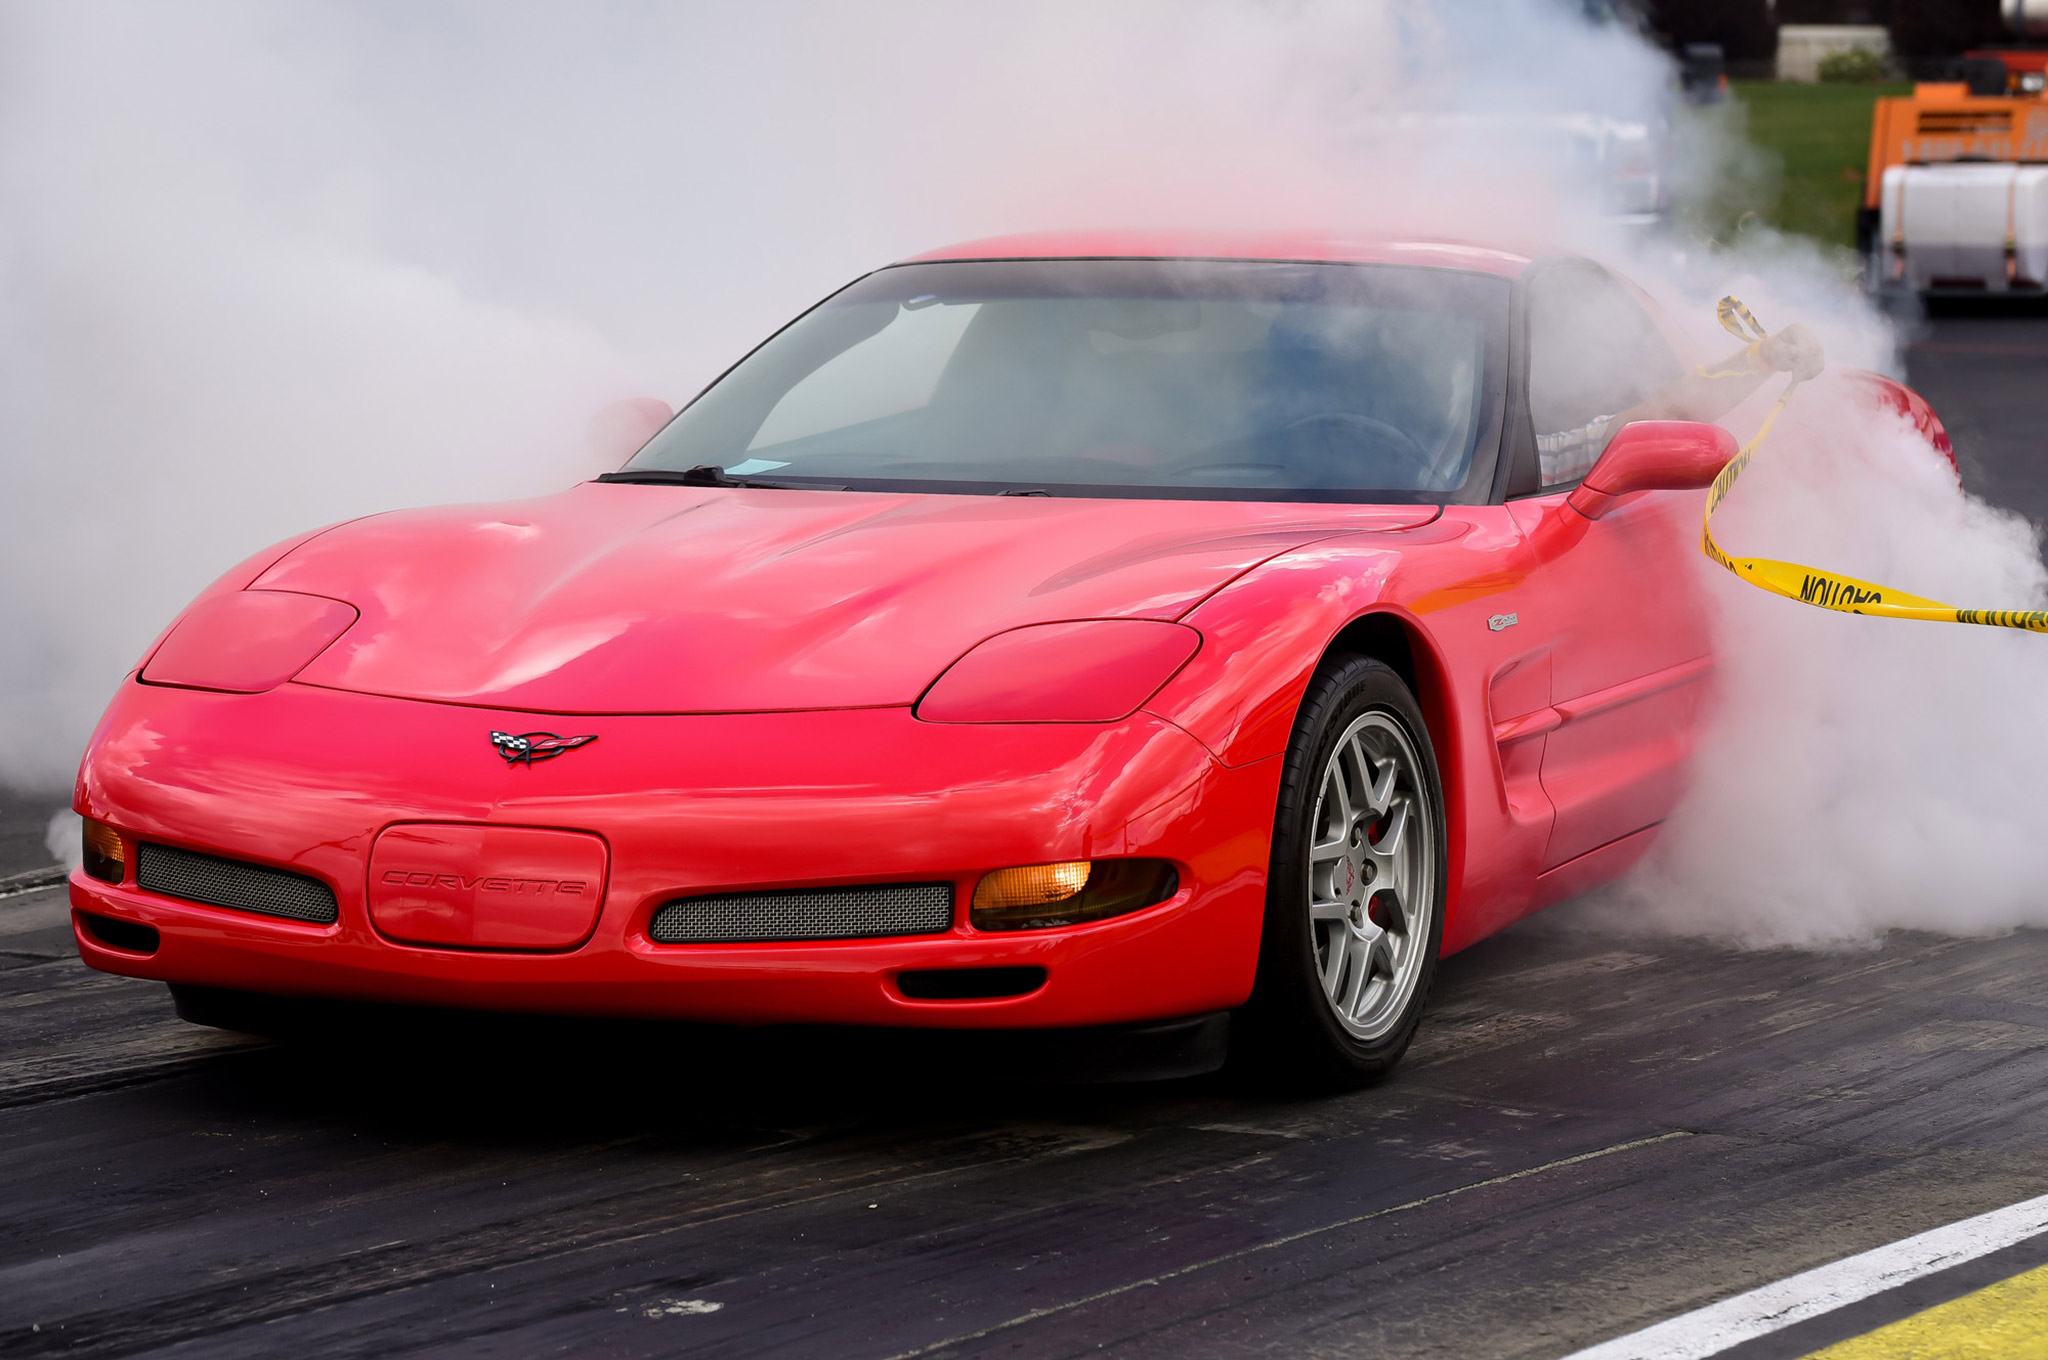 Three contestants entered the burnout contest, with just a single Corvette looking to decimate it's rear rubber. We didn't get this guy's name, and it's probably best we can't mention it, as traction control foiled nearly all of his attempts to spin the rear wheels. Eventually he got it going, but the crowd was over it at that point. Better luck next time.